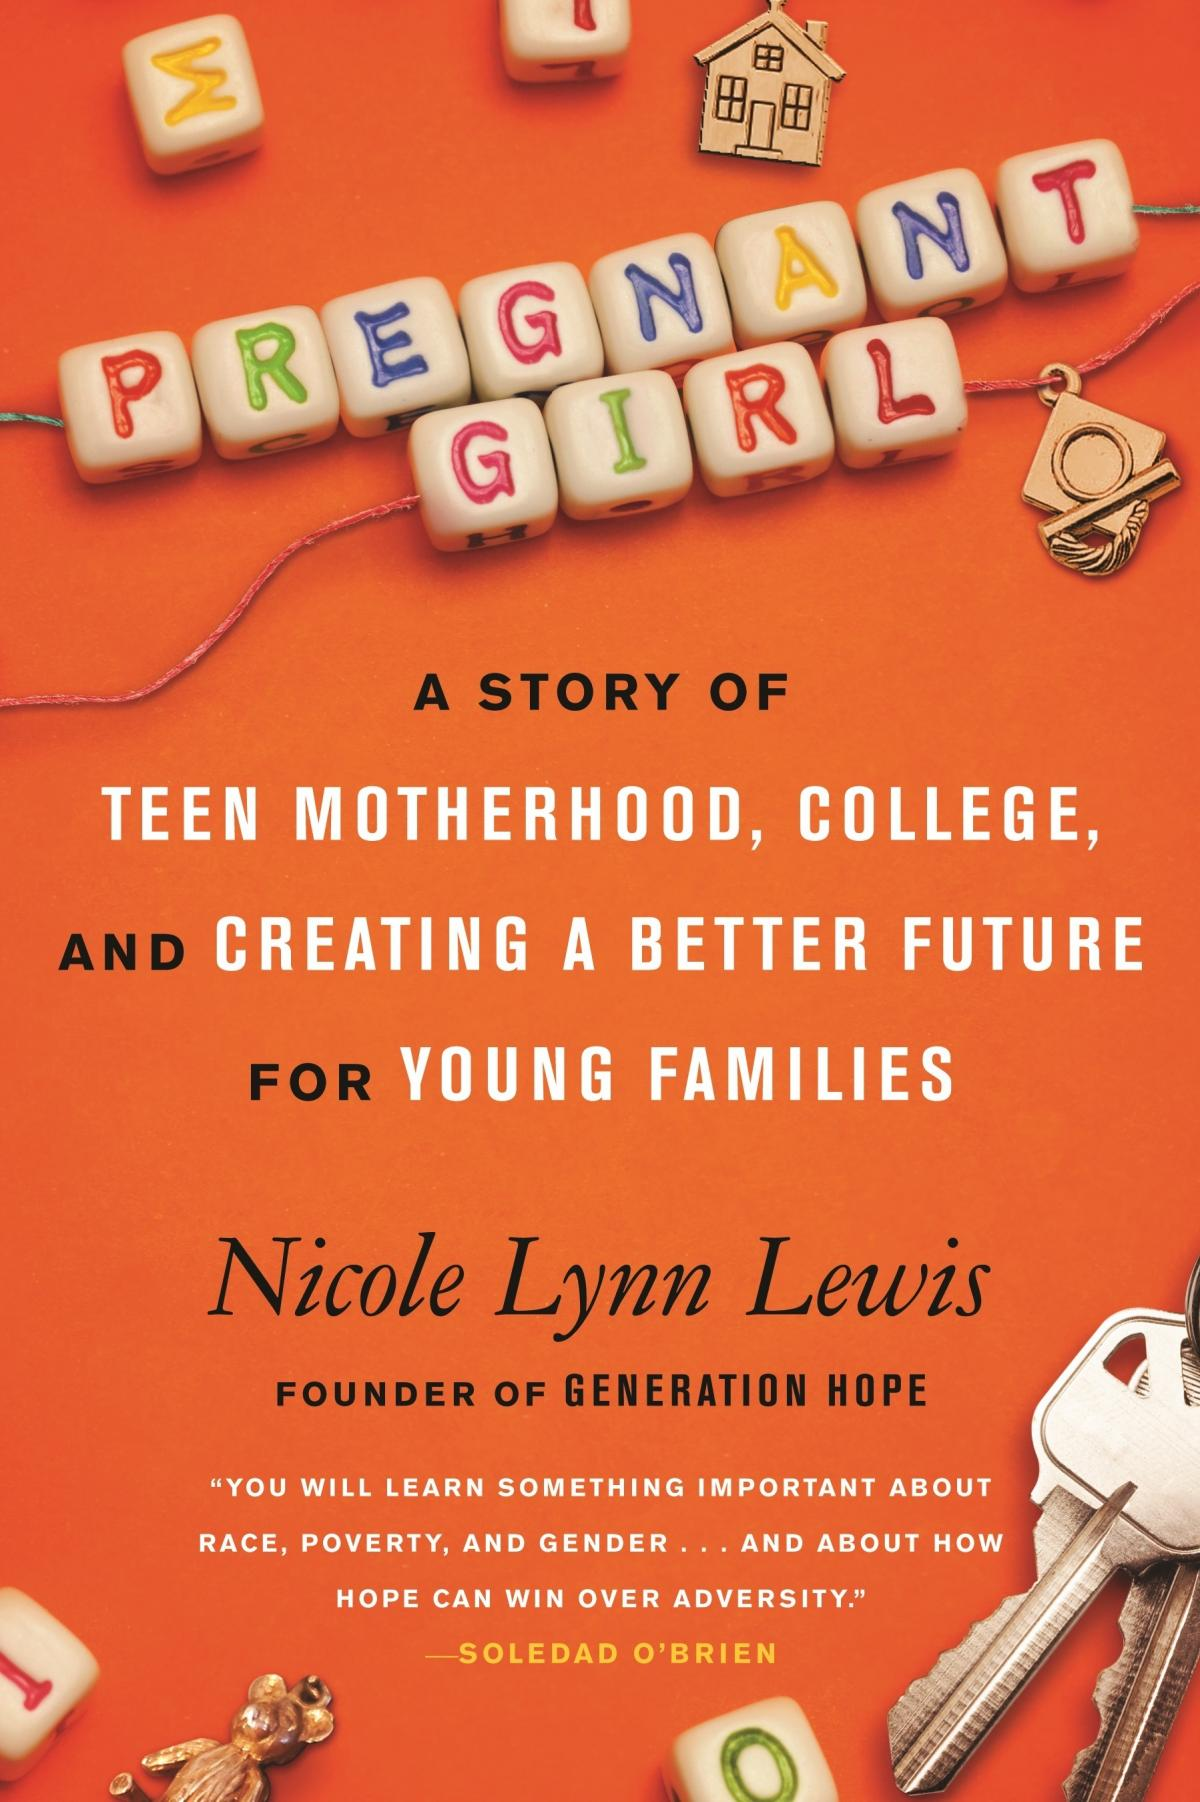 Pregnant Girl: A Story of Teen Motherhood, College, and Creating a Better Future for Young Families by Nicole Lynn Lewis